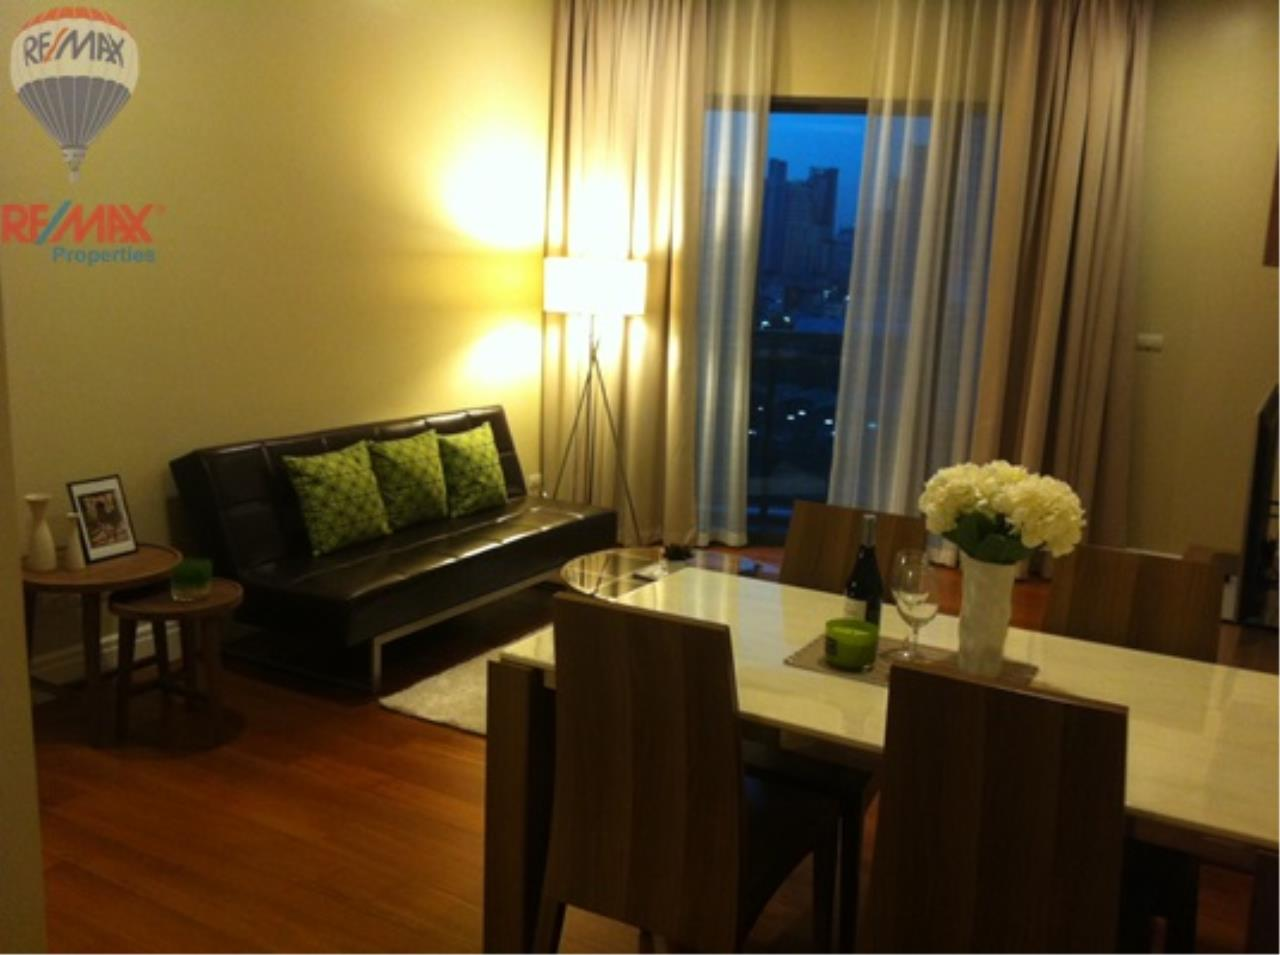 RE/MAX Properties Agency's Rent 2 Bedrooms 92 sq.m at Bright Sukhumvit 24 2